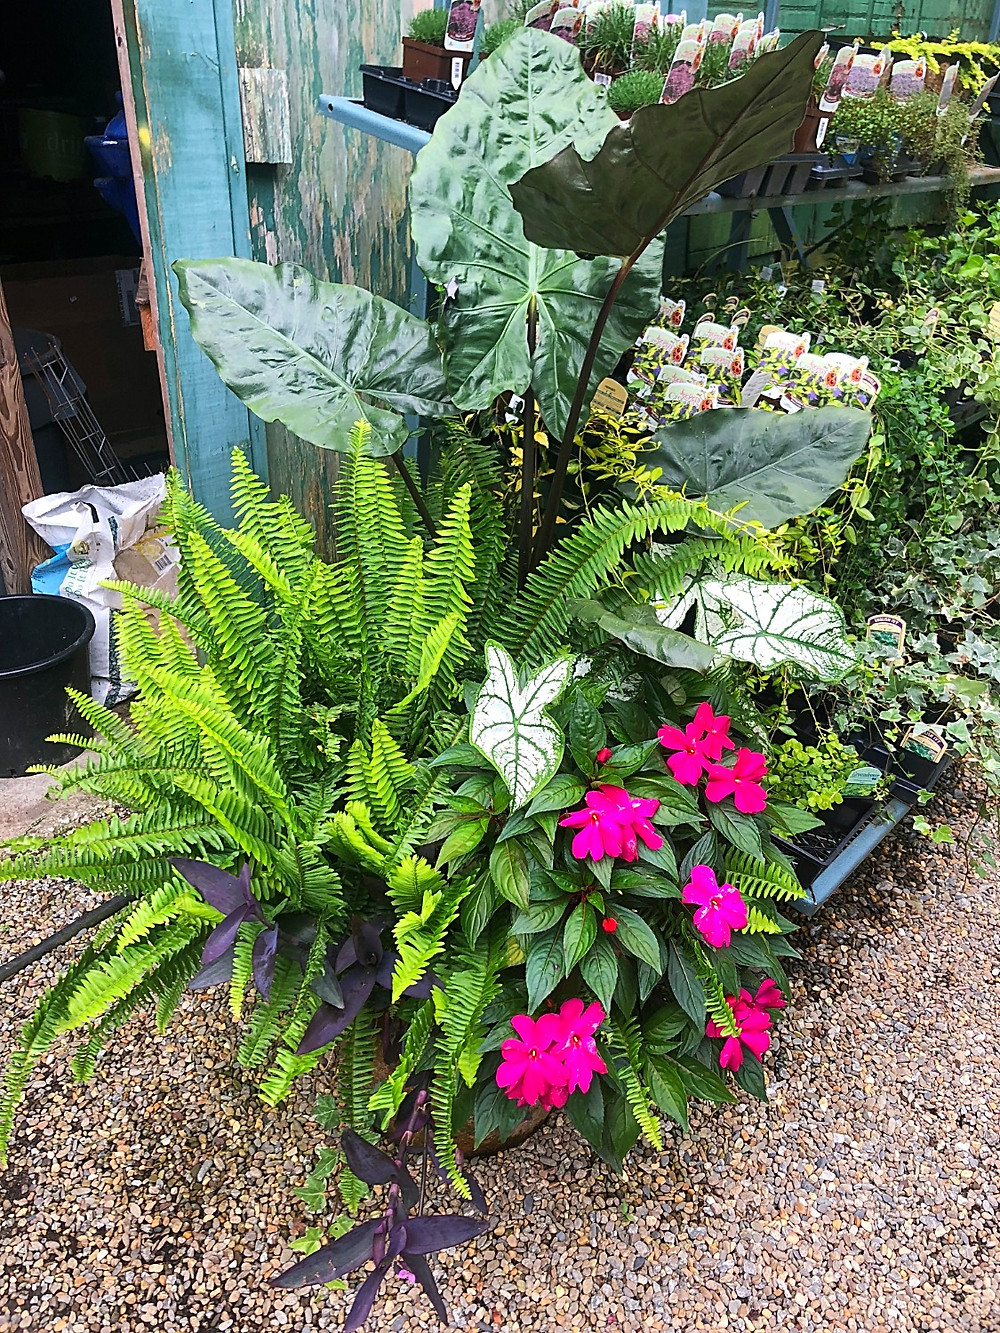 A container garden with ferns at A Growing Concern garden center